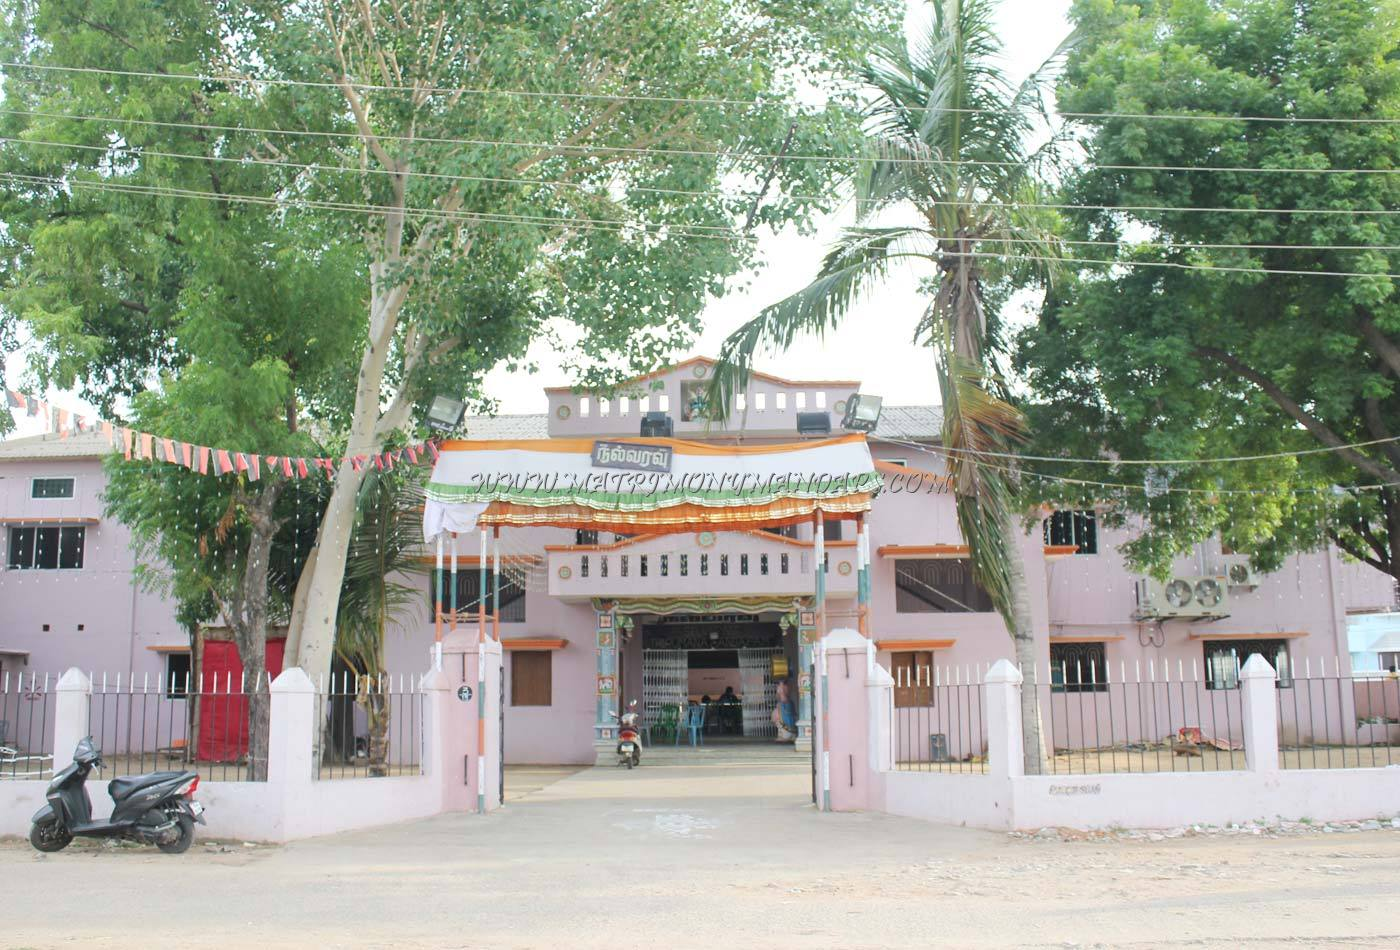 Find the availability of the Selvarani Thirumana Mandapam (A/C) in Poonamallee, Chennai and avail special offers